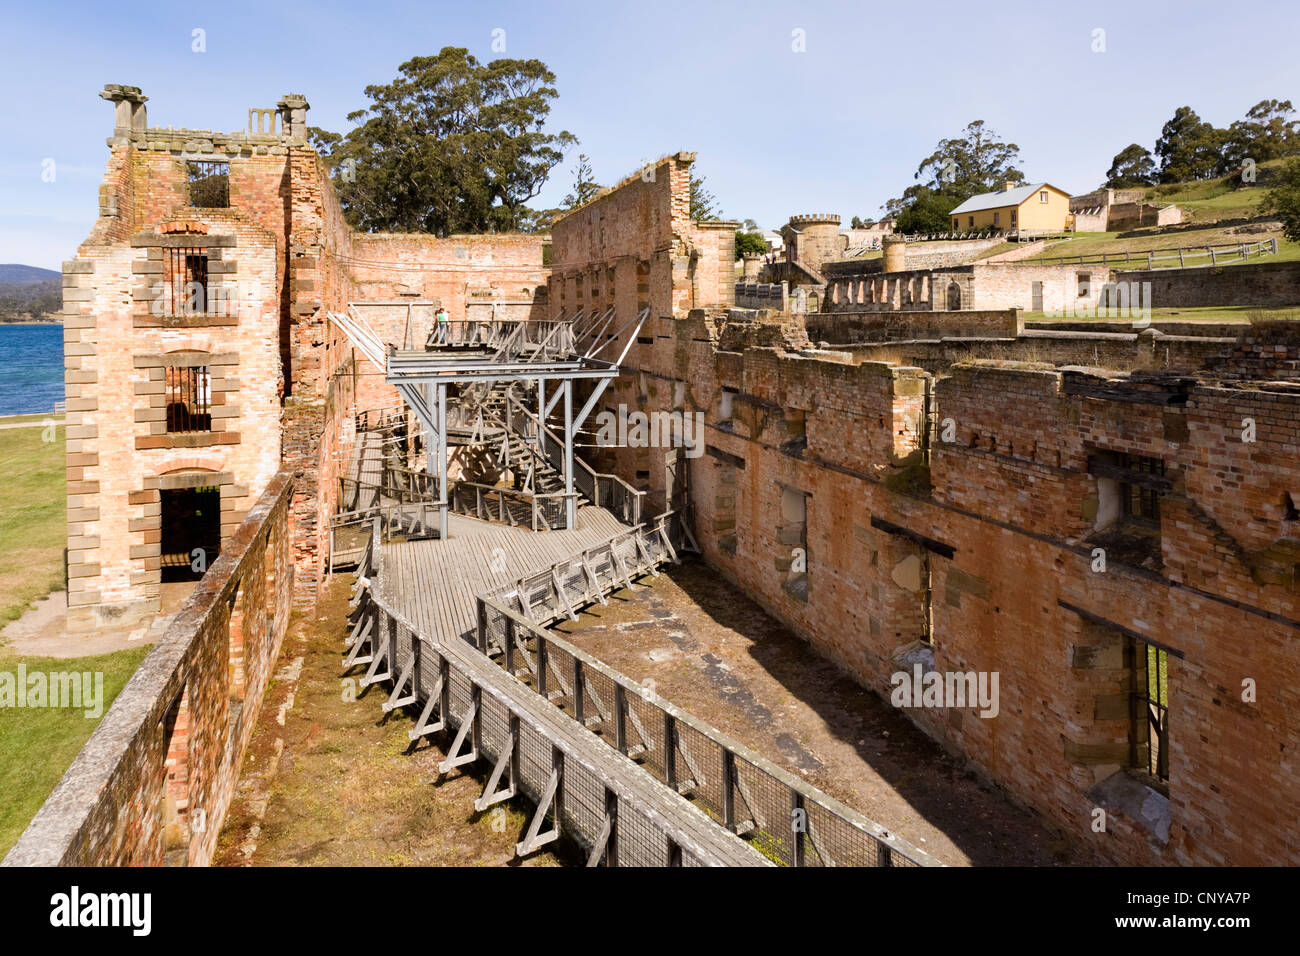 The ruins of Port Arthur Penitentiary, Tasmania, Australia. A walkway for tourists has been built for access. - Stock Image